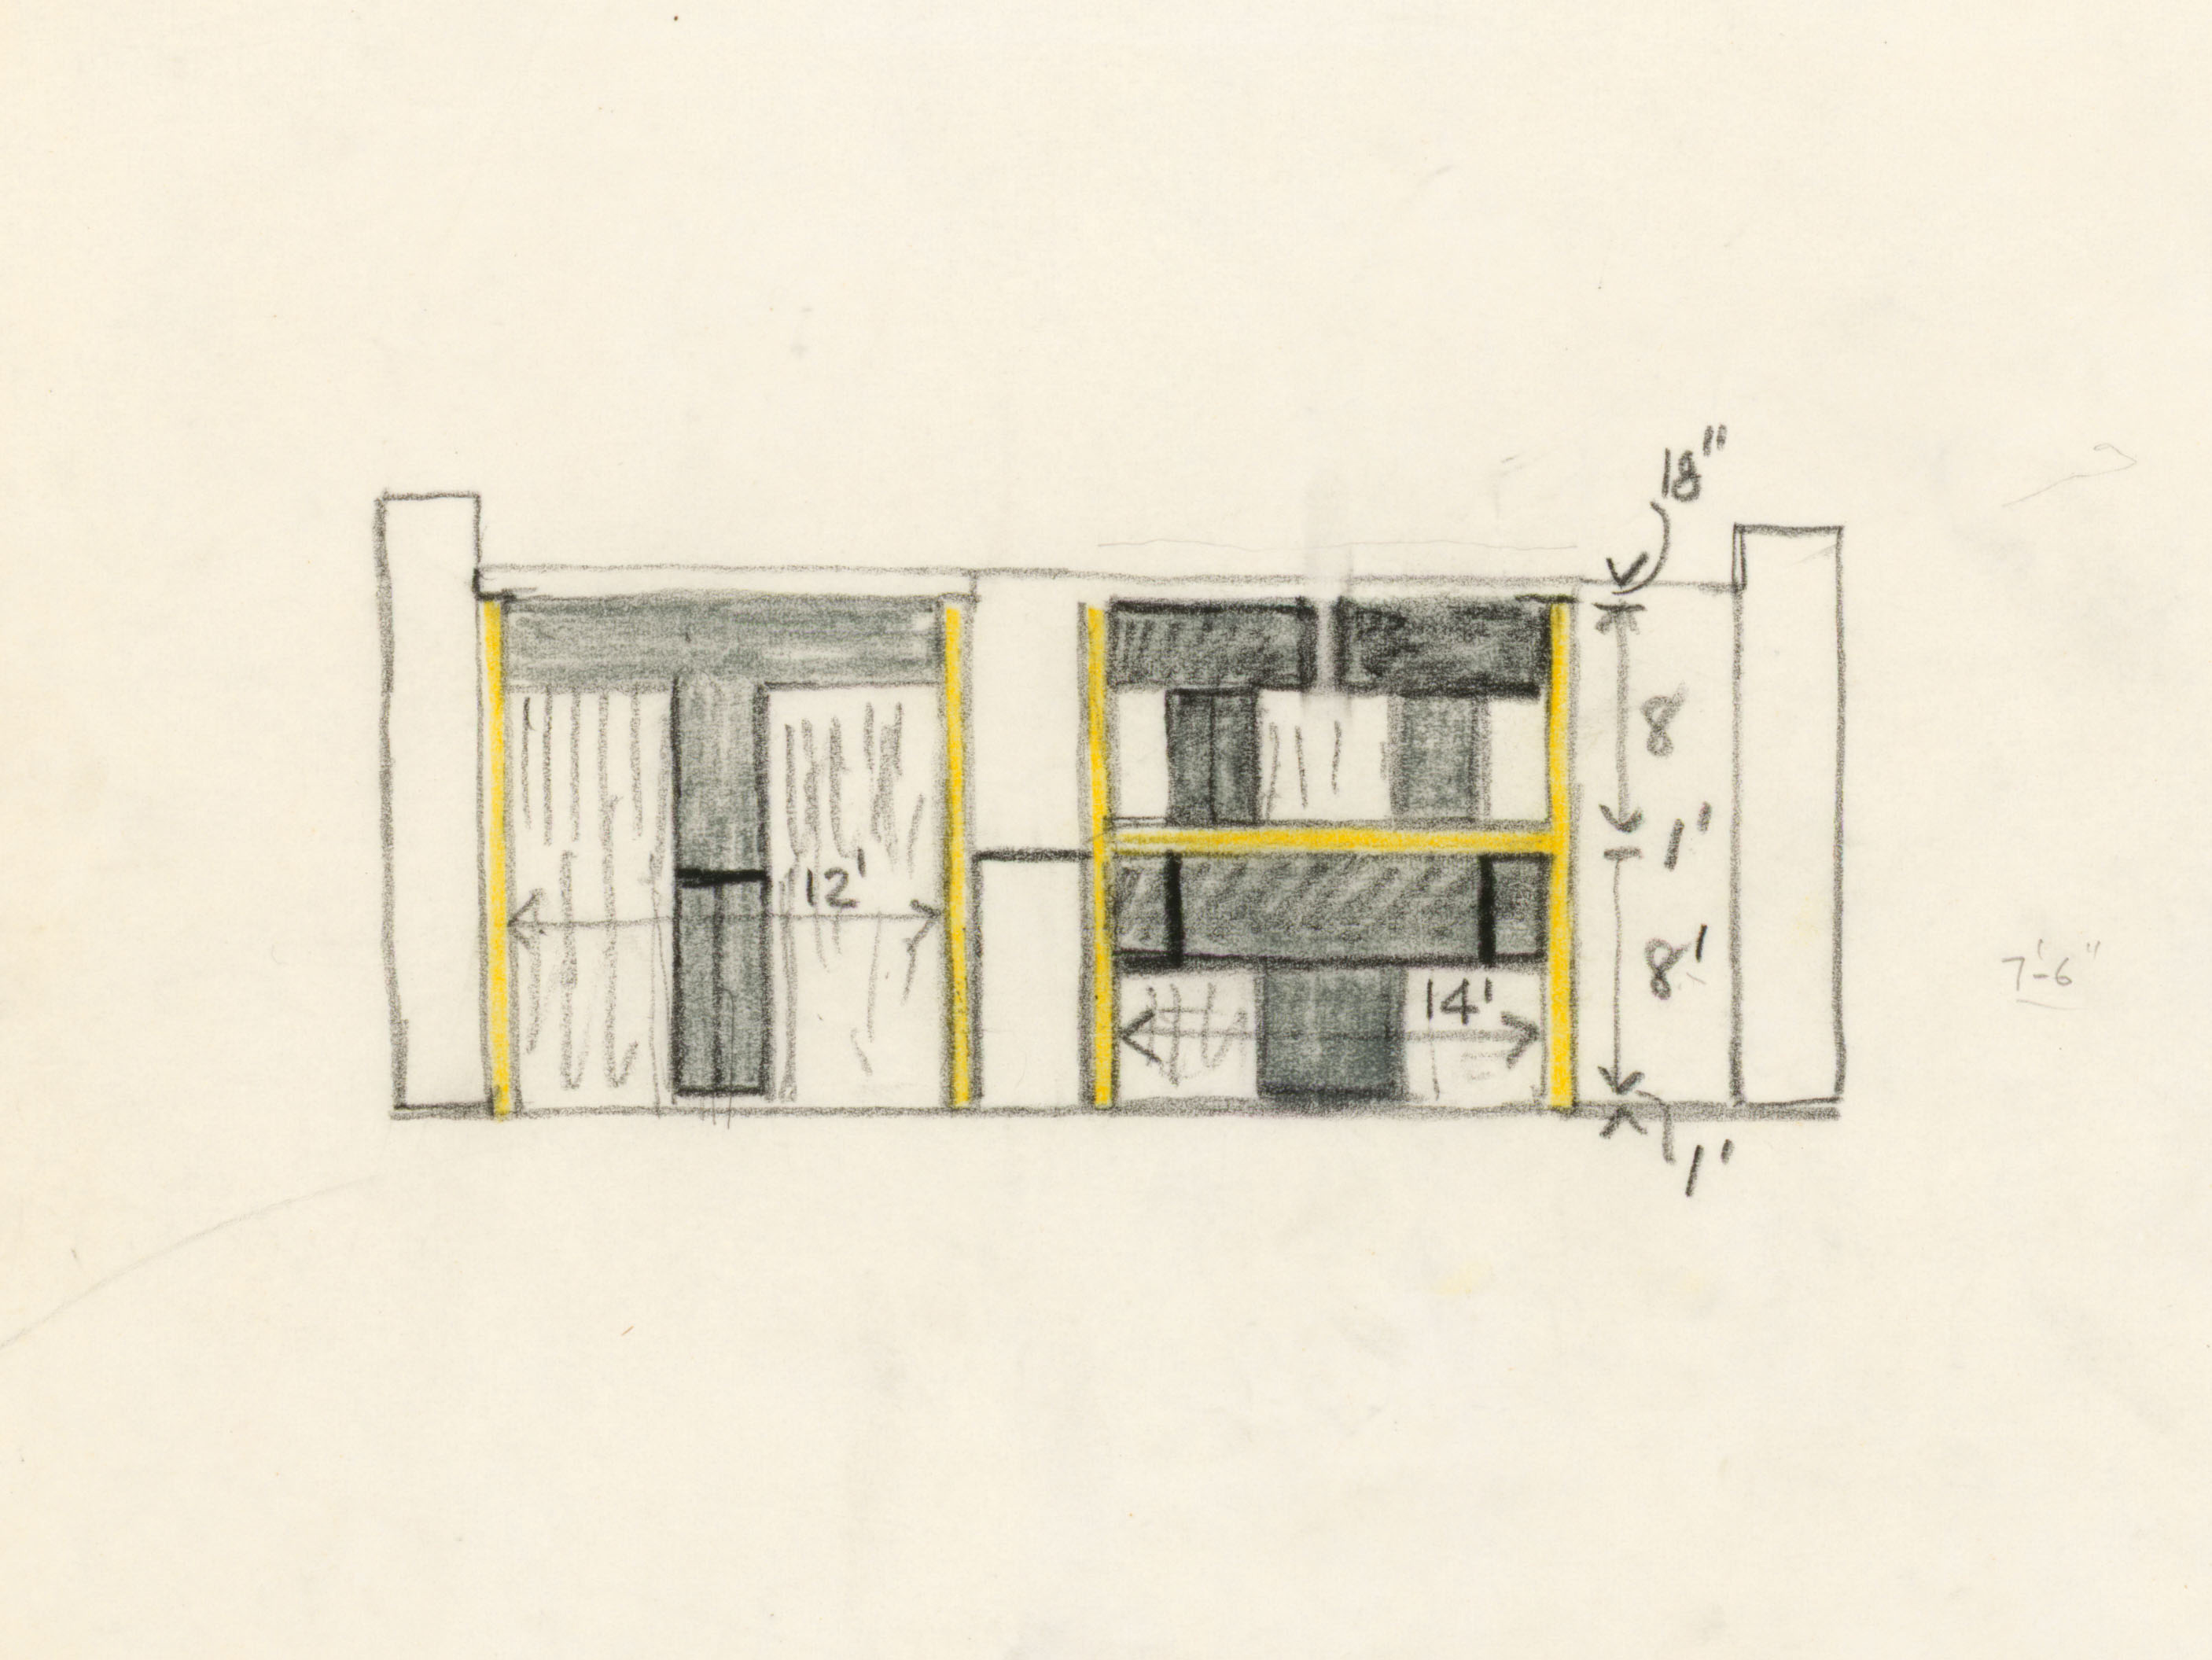 Kahn's Sketch of the Esherick House in Chestnut Hill. Courtesy of Louis I. Kahn Collection, University of Pennsylvania and the Pennsylvania Historical and Museum Commission.​